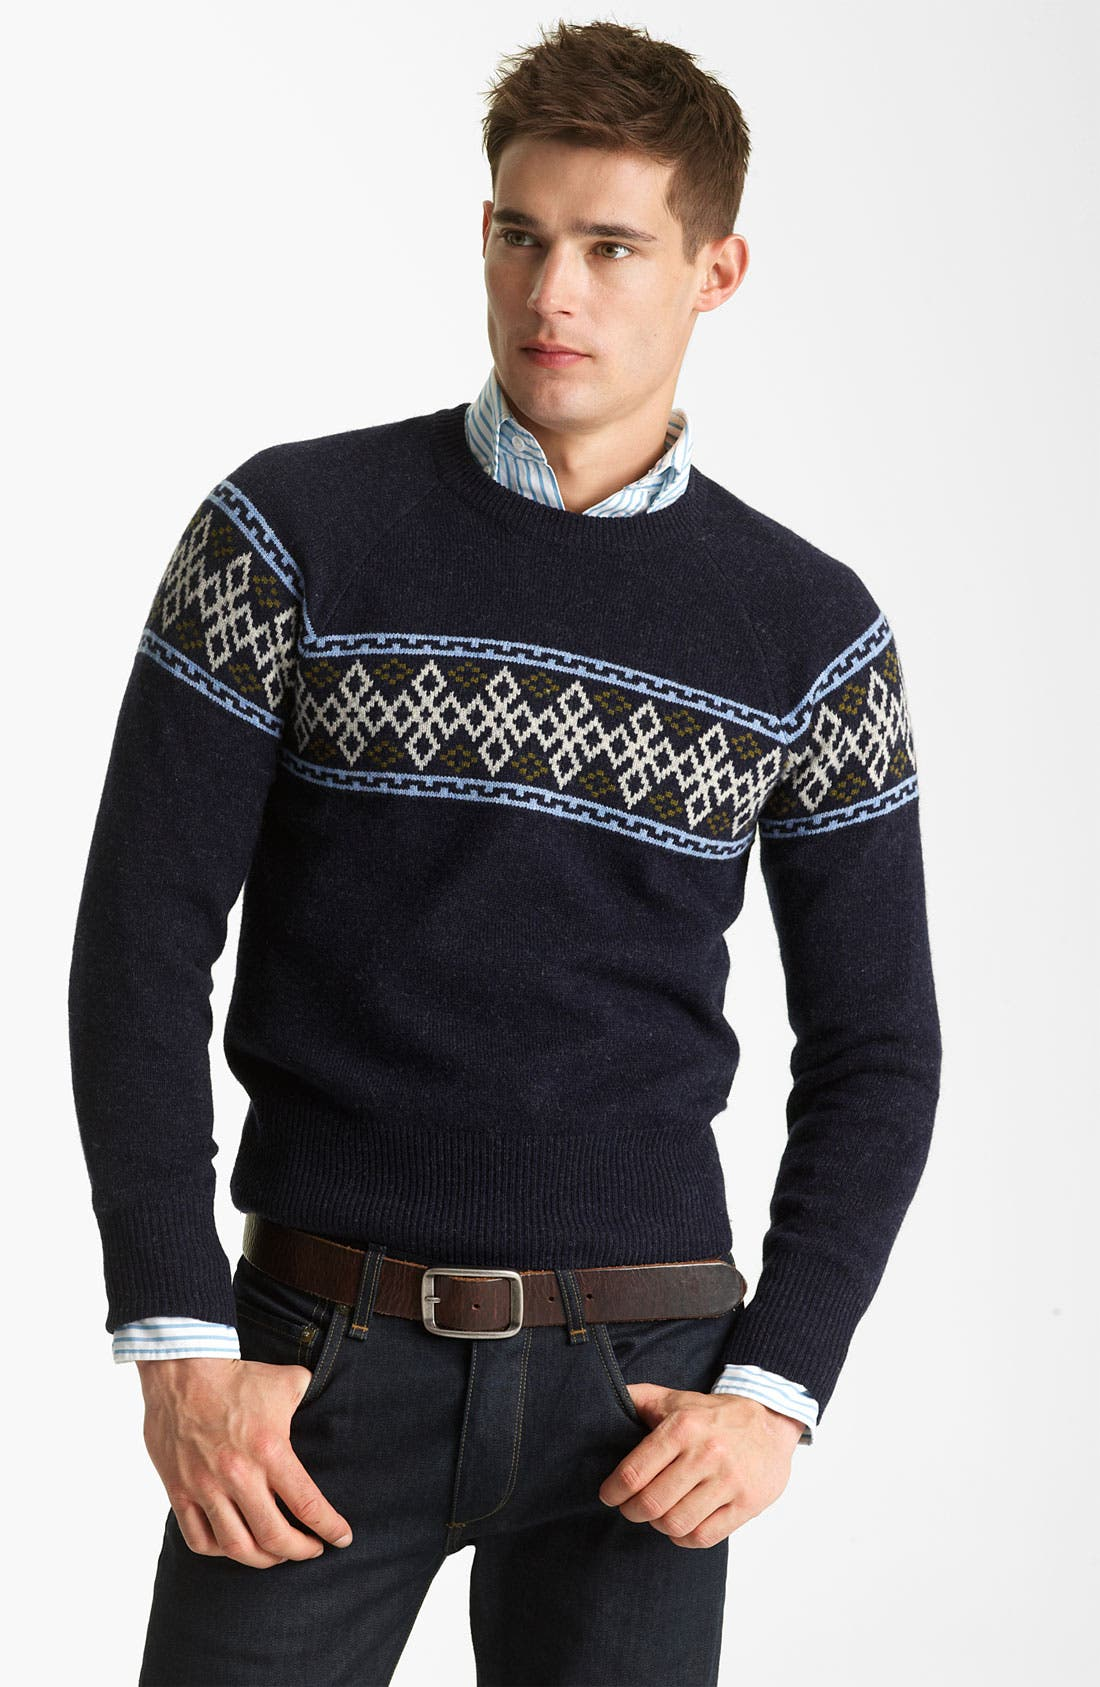 Alternate Image 1 Selected - Gant by Michael Bastian Wool Crewneck Sweater